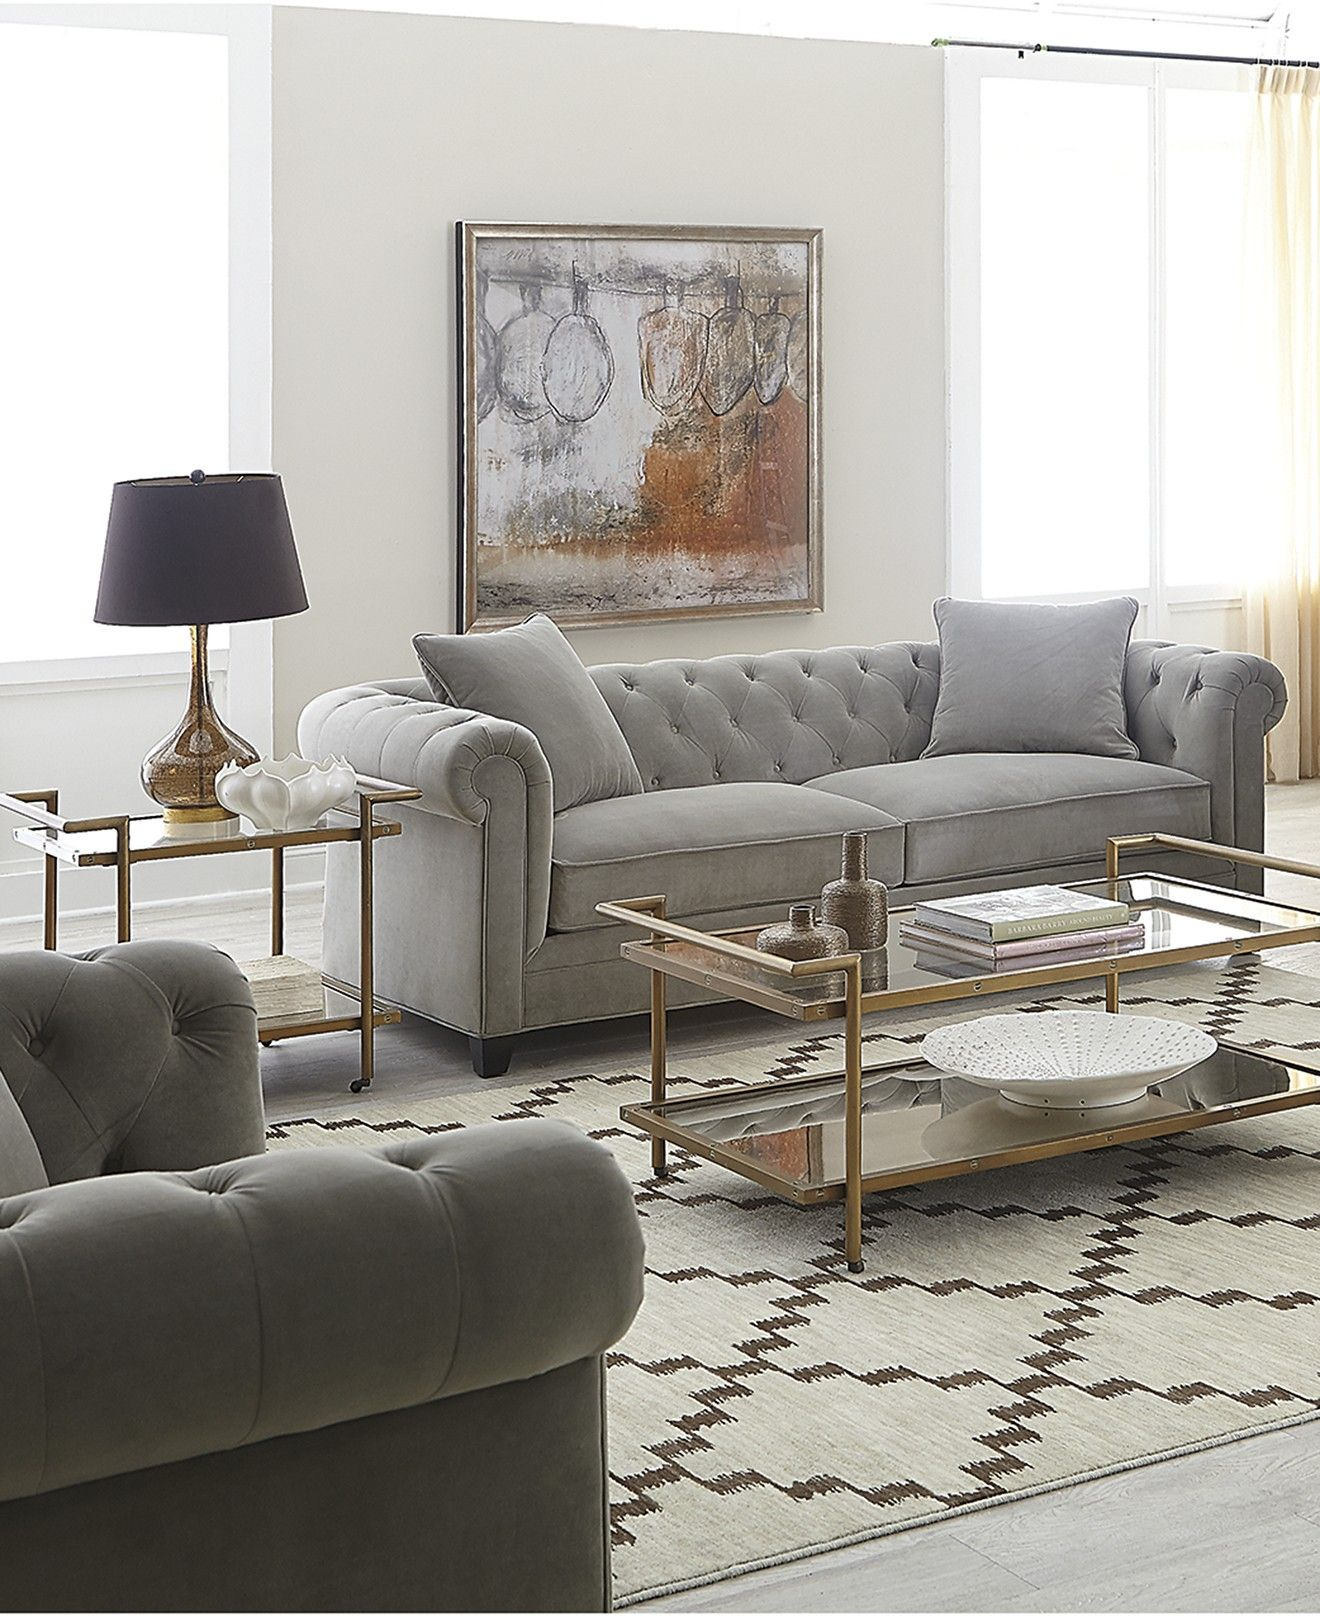 Martha Stewart Collection Saybridge Living Room Furniture Collection Created For Macy S Reviews Furniture Macy S In 2020 Living Room Furniture Collections Martha Stewart Living Room Living Room Sofa